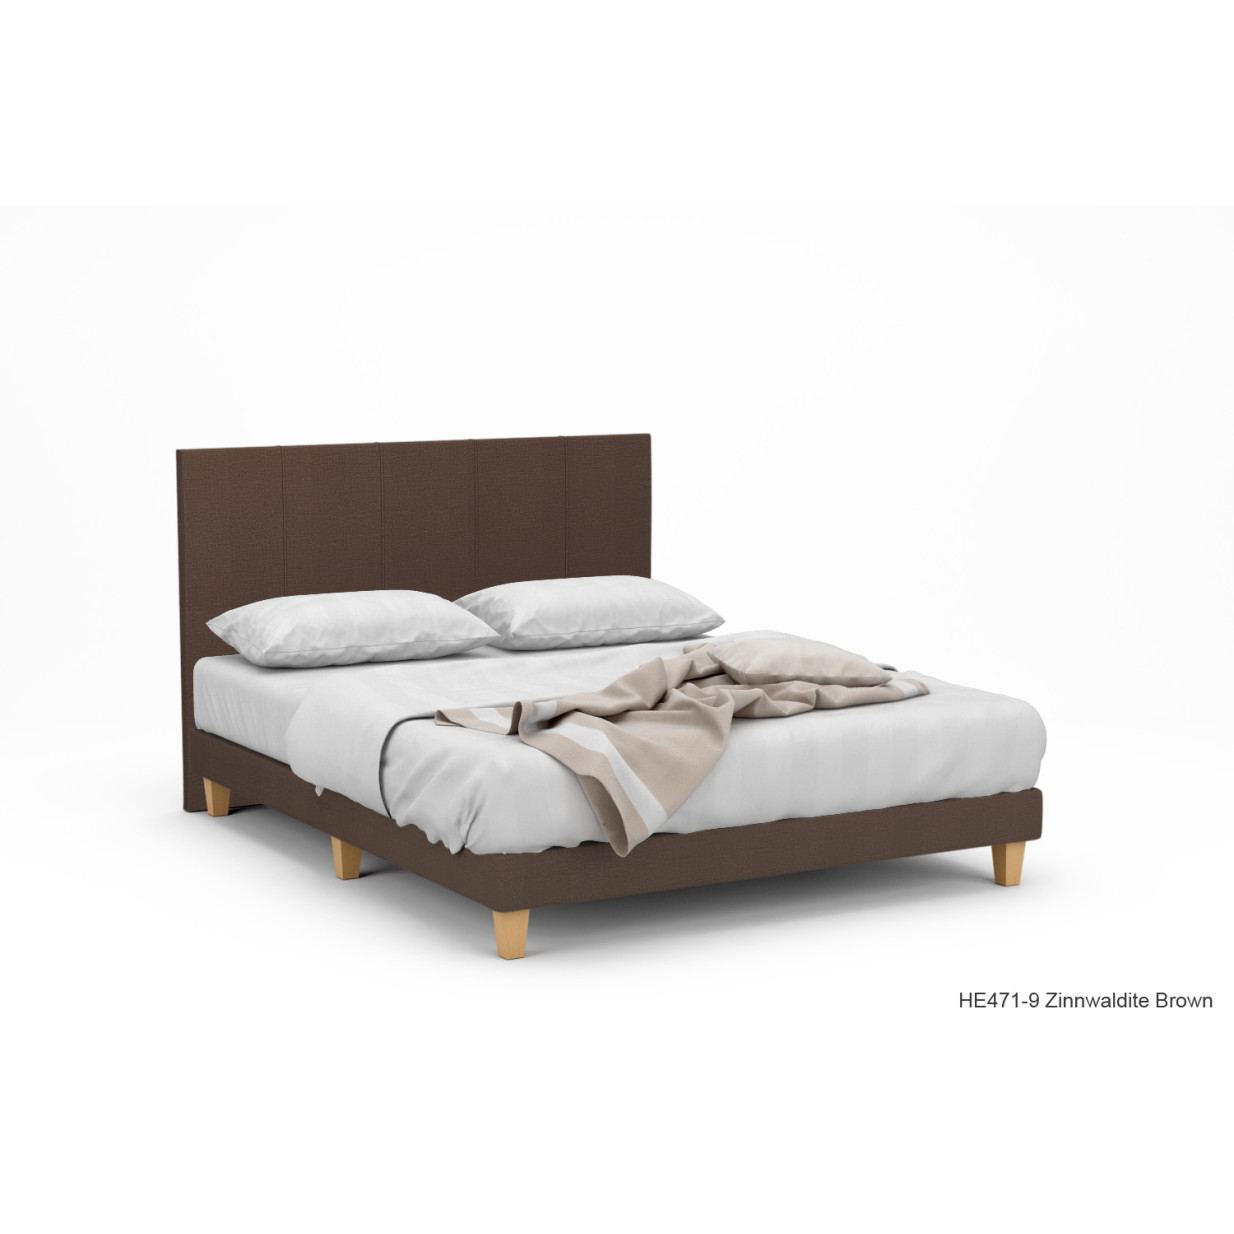 Dane II Fabric Bed Frame With Beech Legs | Furniture & Home Décor ...